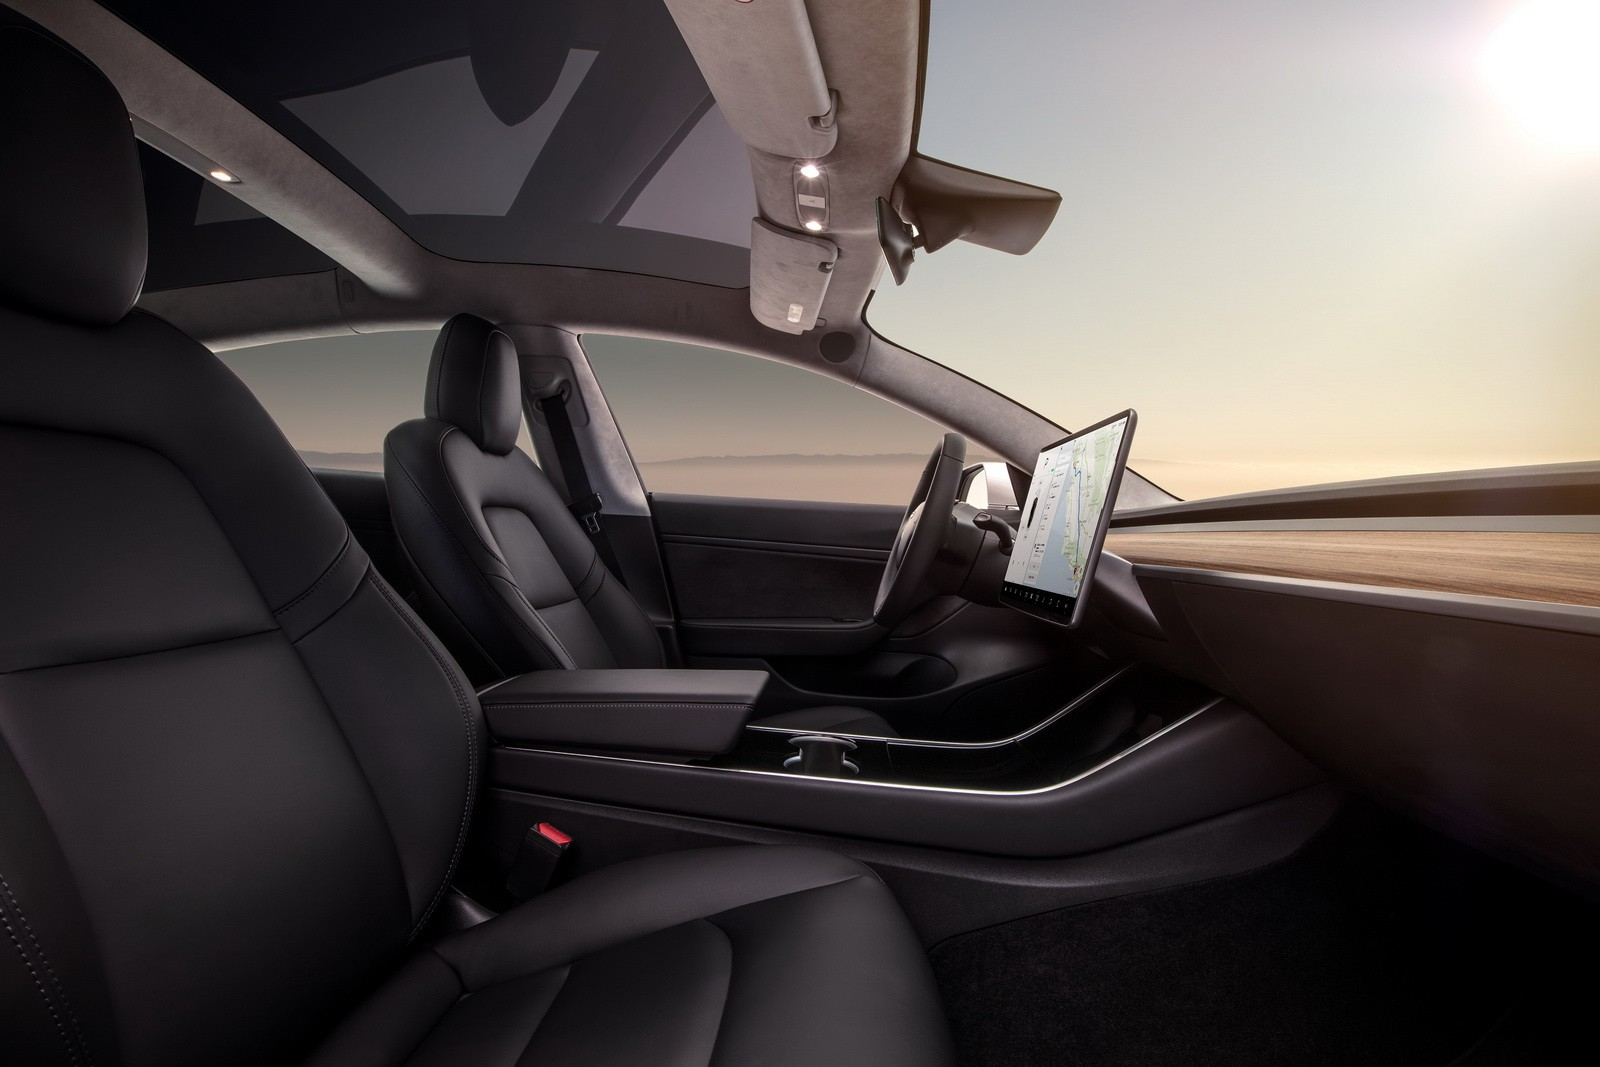 tesla model x recalled over rear seat issue us deliveries rise to 2 700 suvs autoevolution. Black Bedroom Furniture Sets. Home Design Ideas